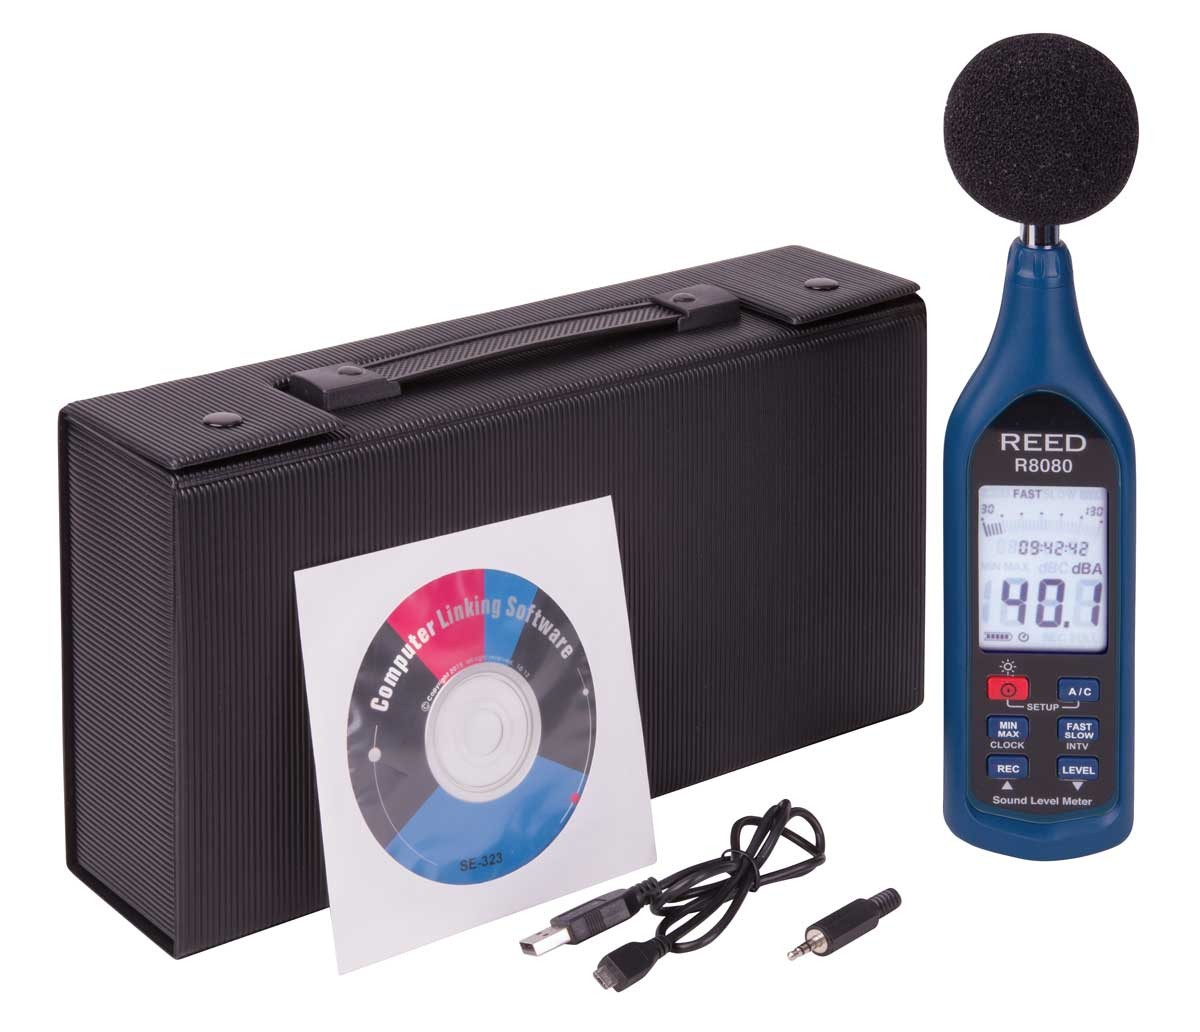 REED R8080 Data Logging Sound Level Meter with Bargraph-Included